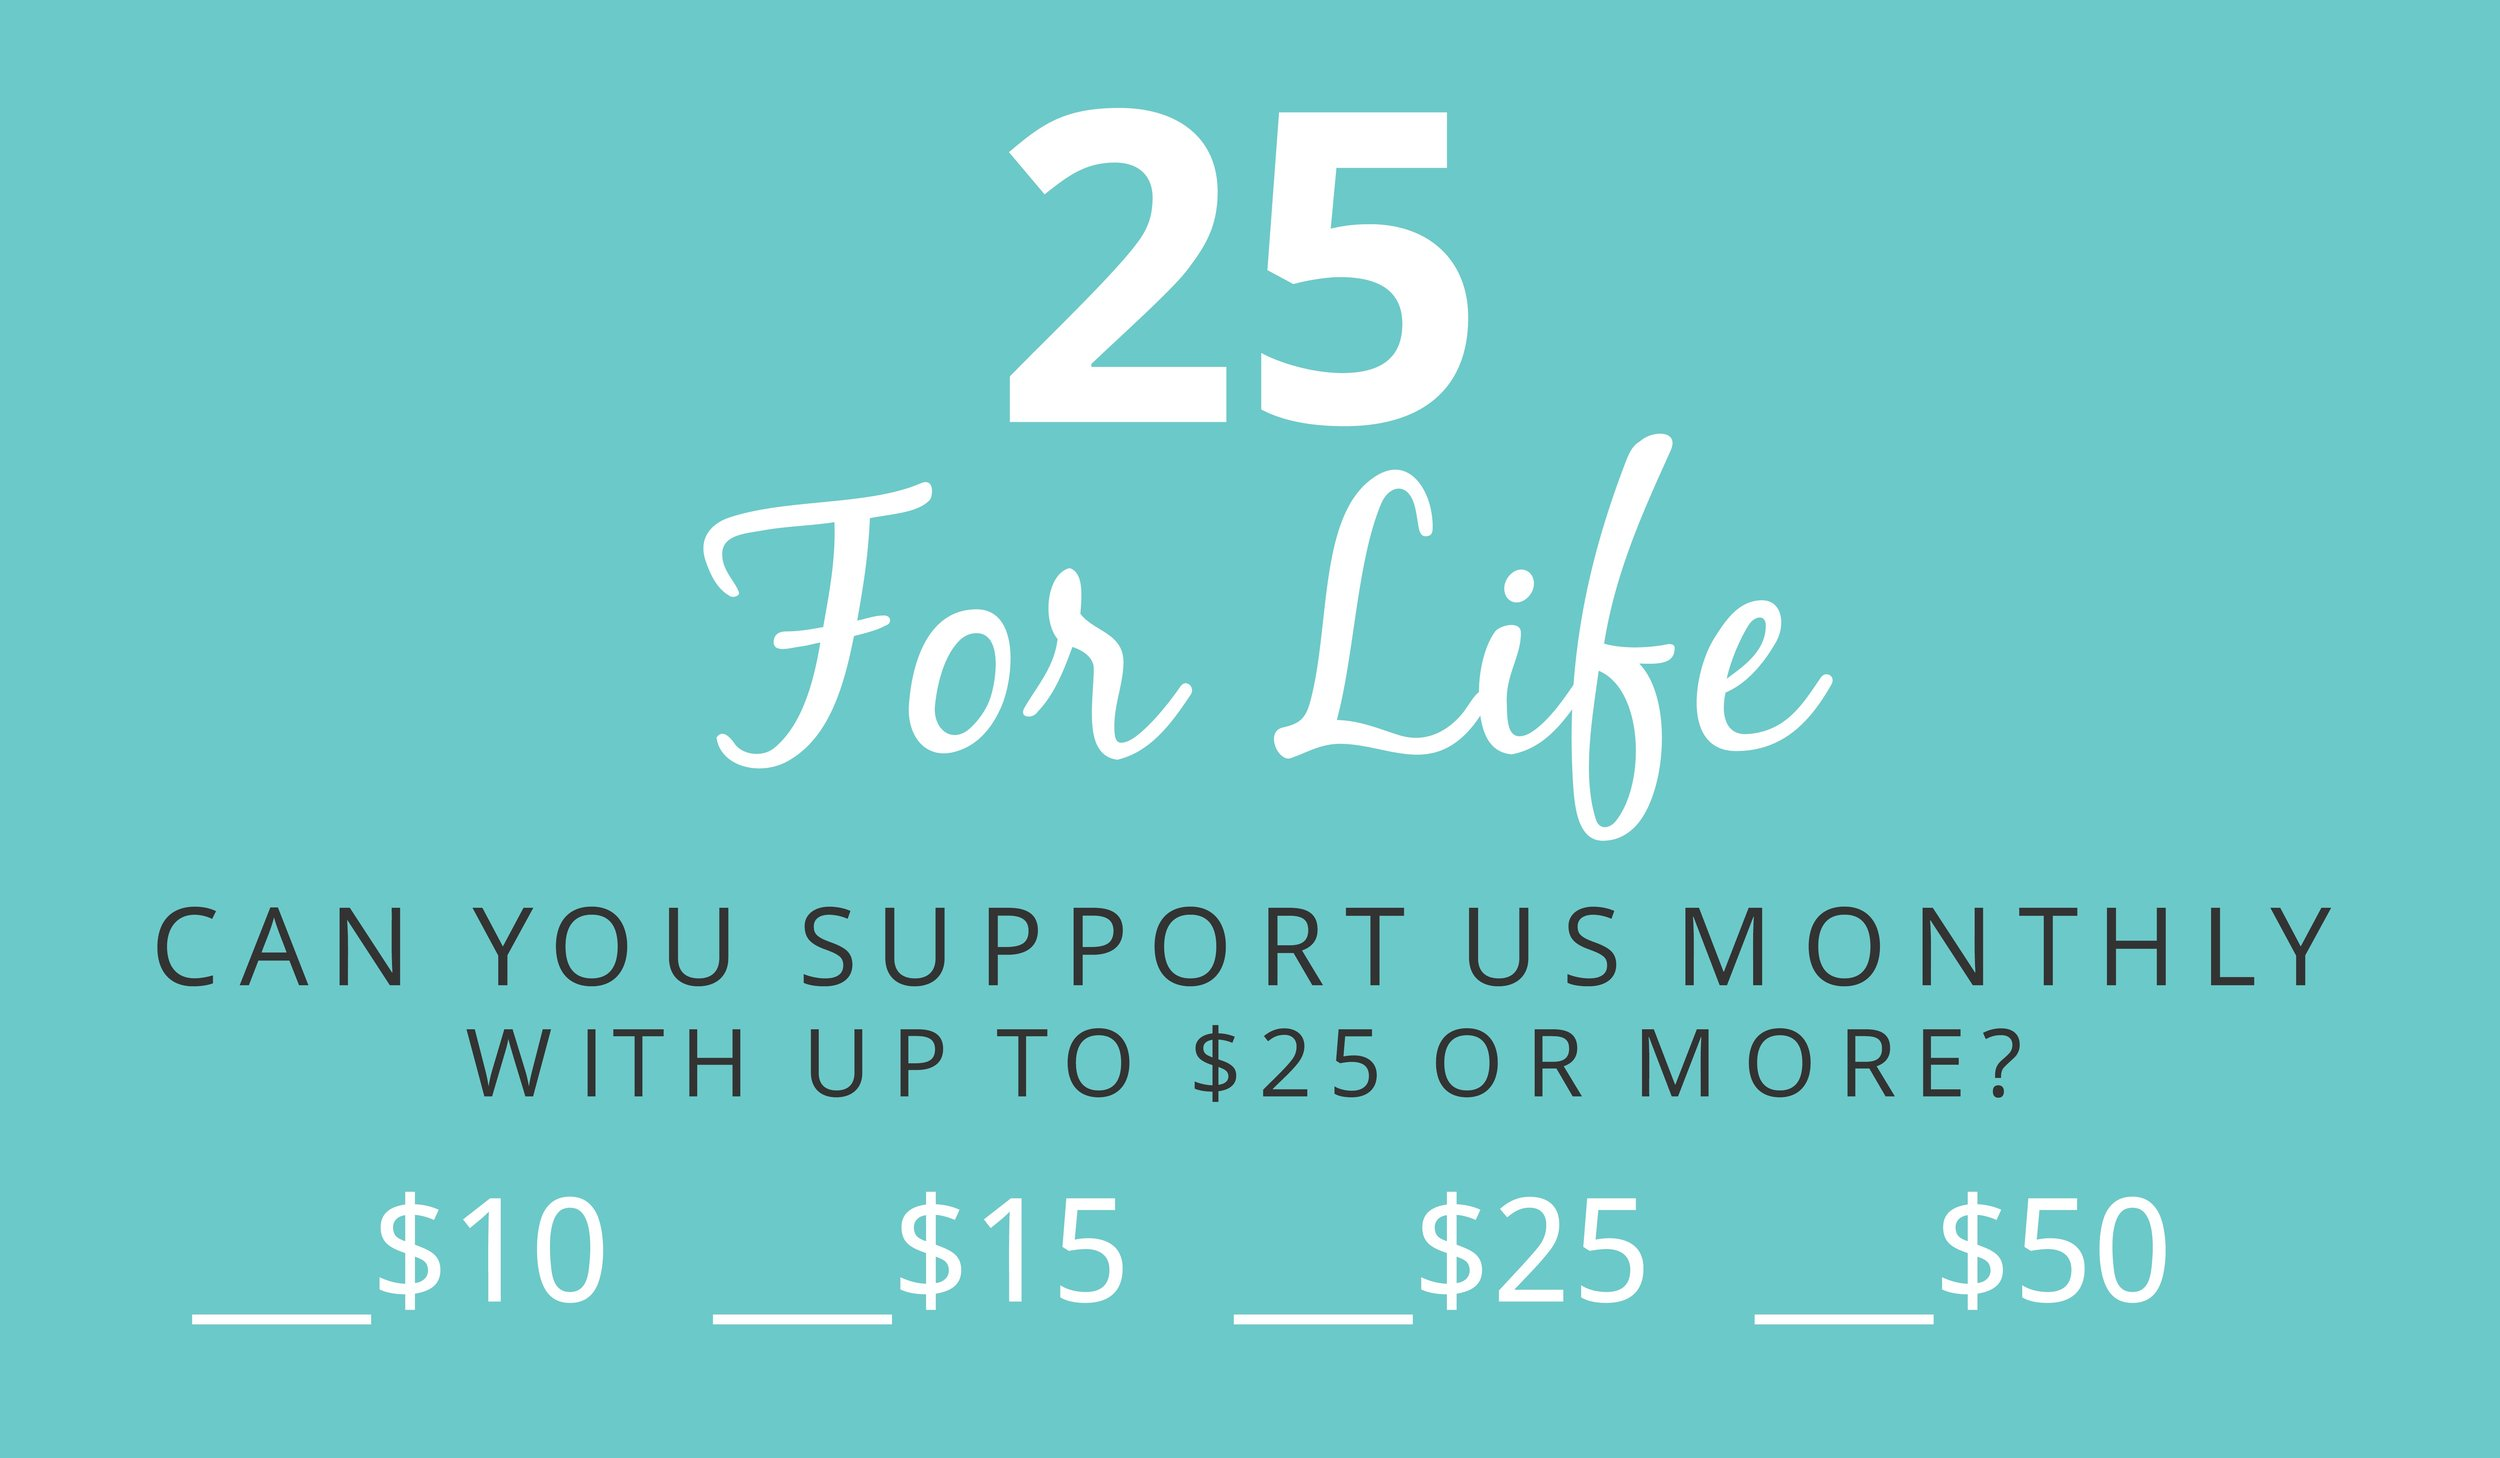 25 For Life (Updated 7.11.17).jpeg